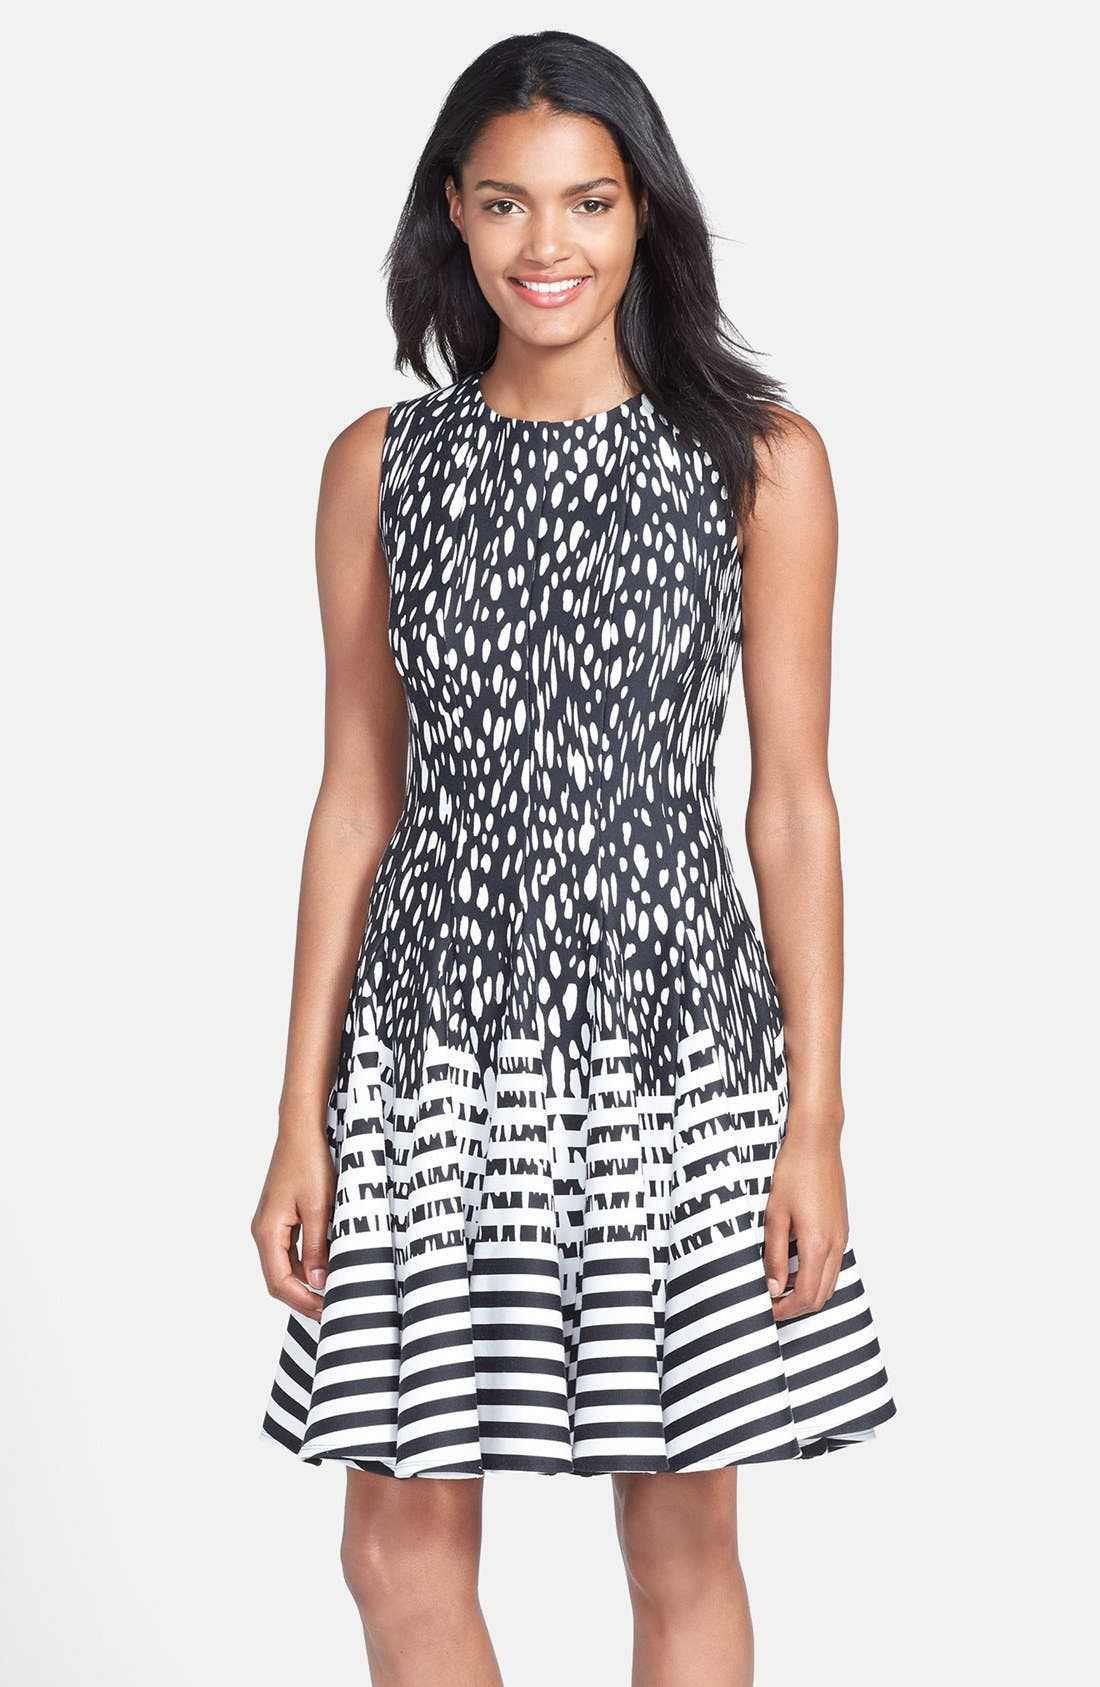 Alternate Image 1 Selected - Eliza J Mixed Print Ponte Fit & Flare Dress (Regular & Petite)